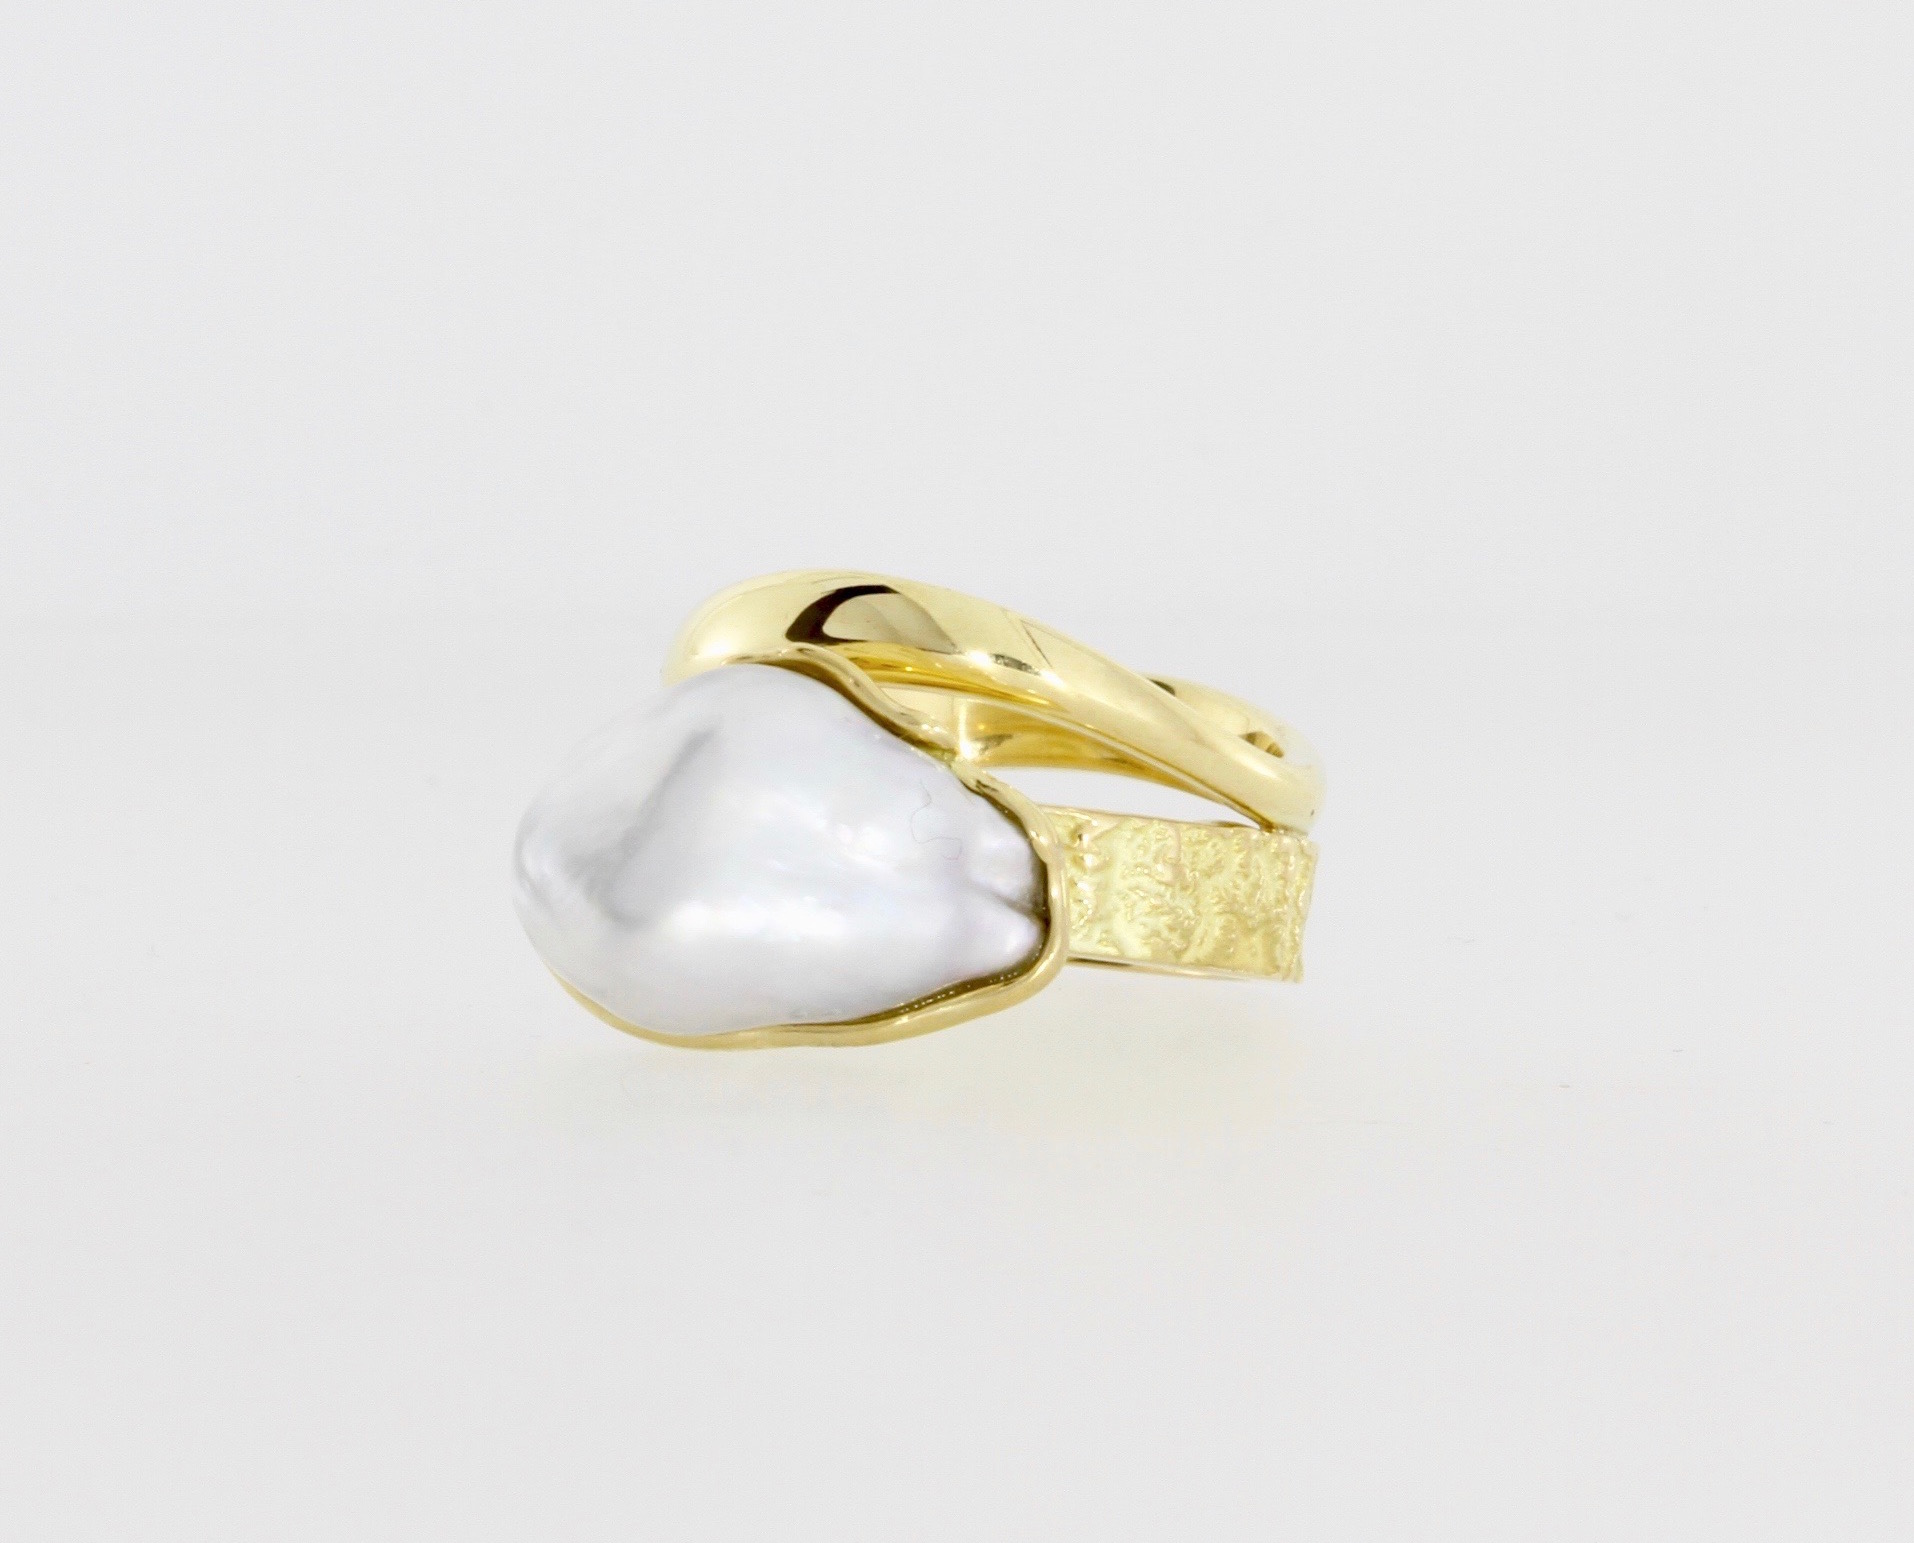 Payet Baroque Broome pearl ring